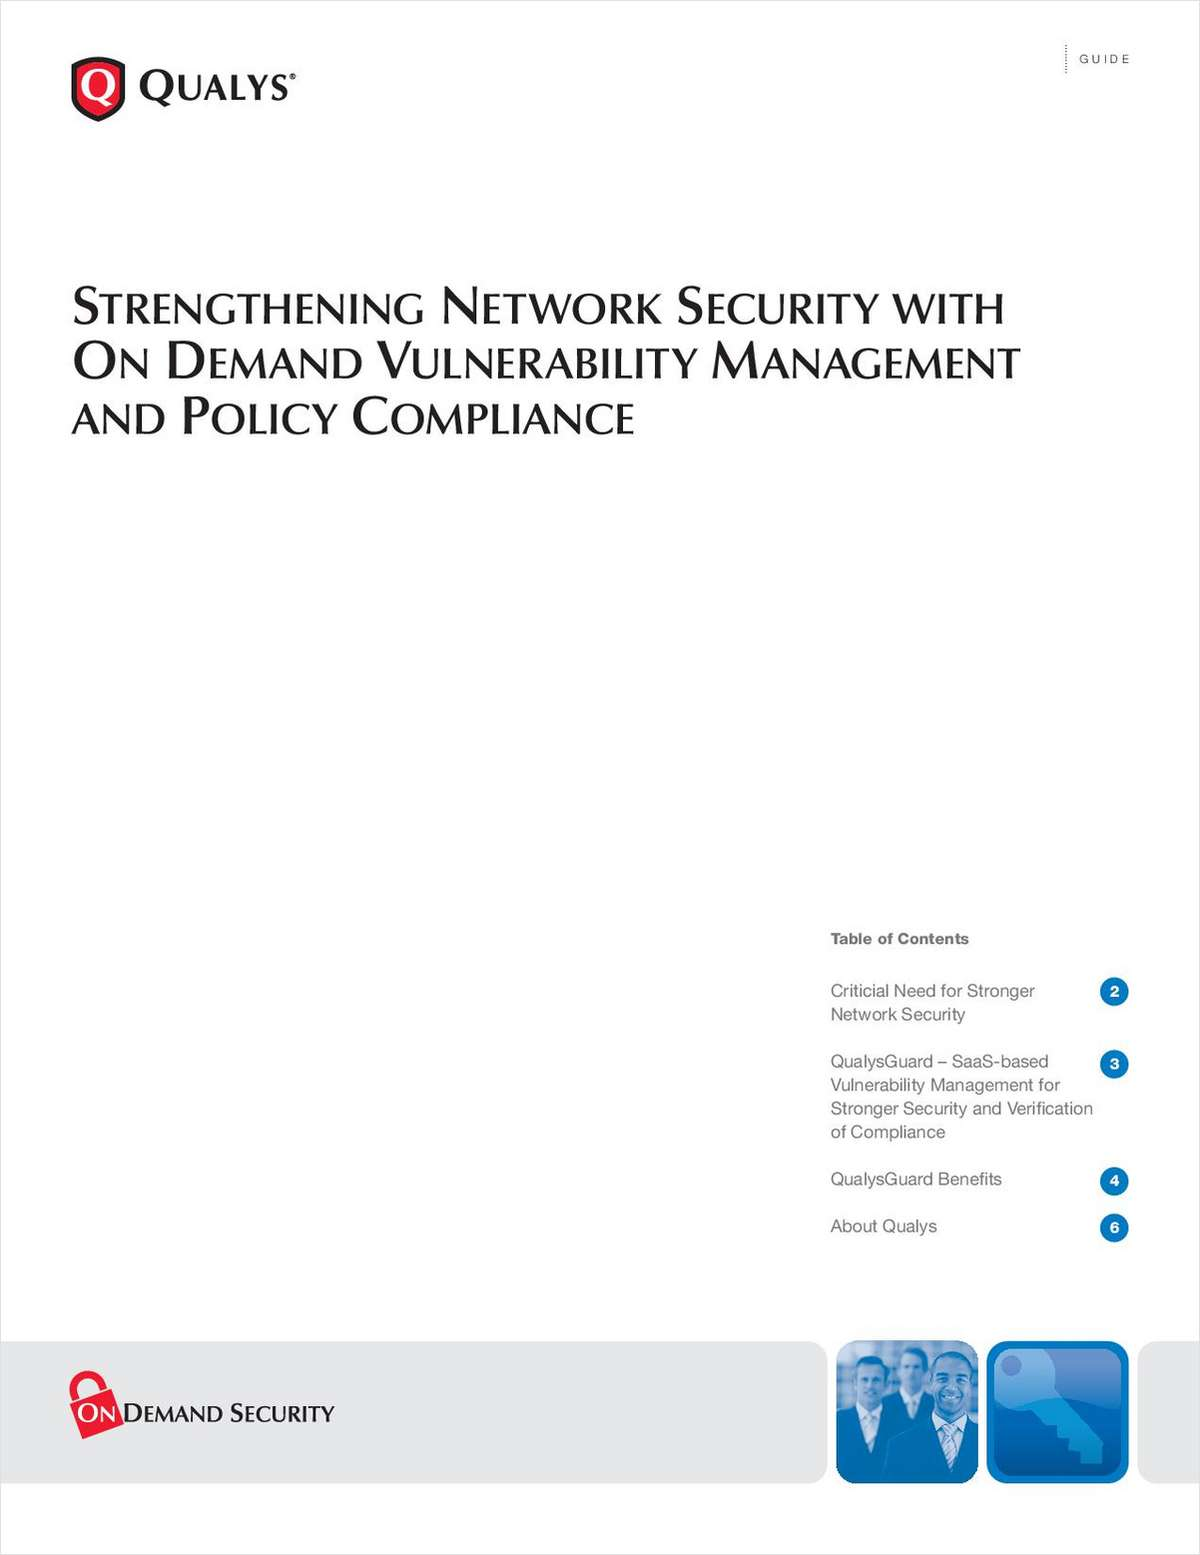 Strengthening Network Security with On Demand Vulnerability Management & Policy Compliance